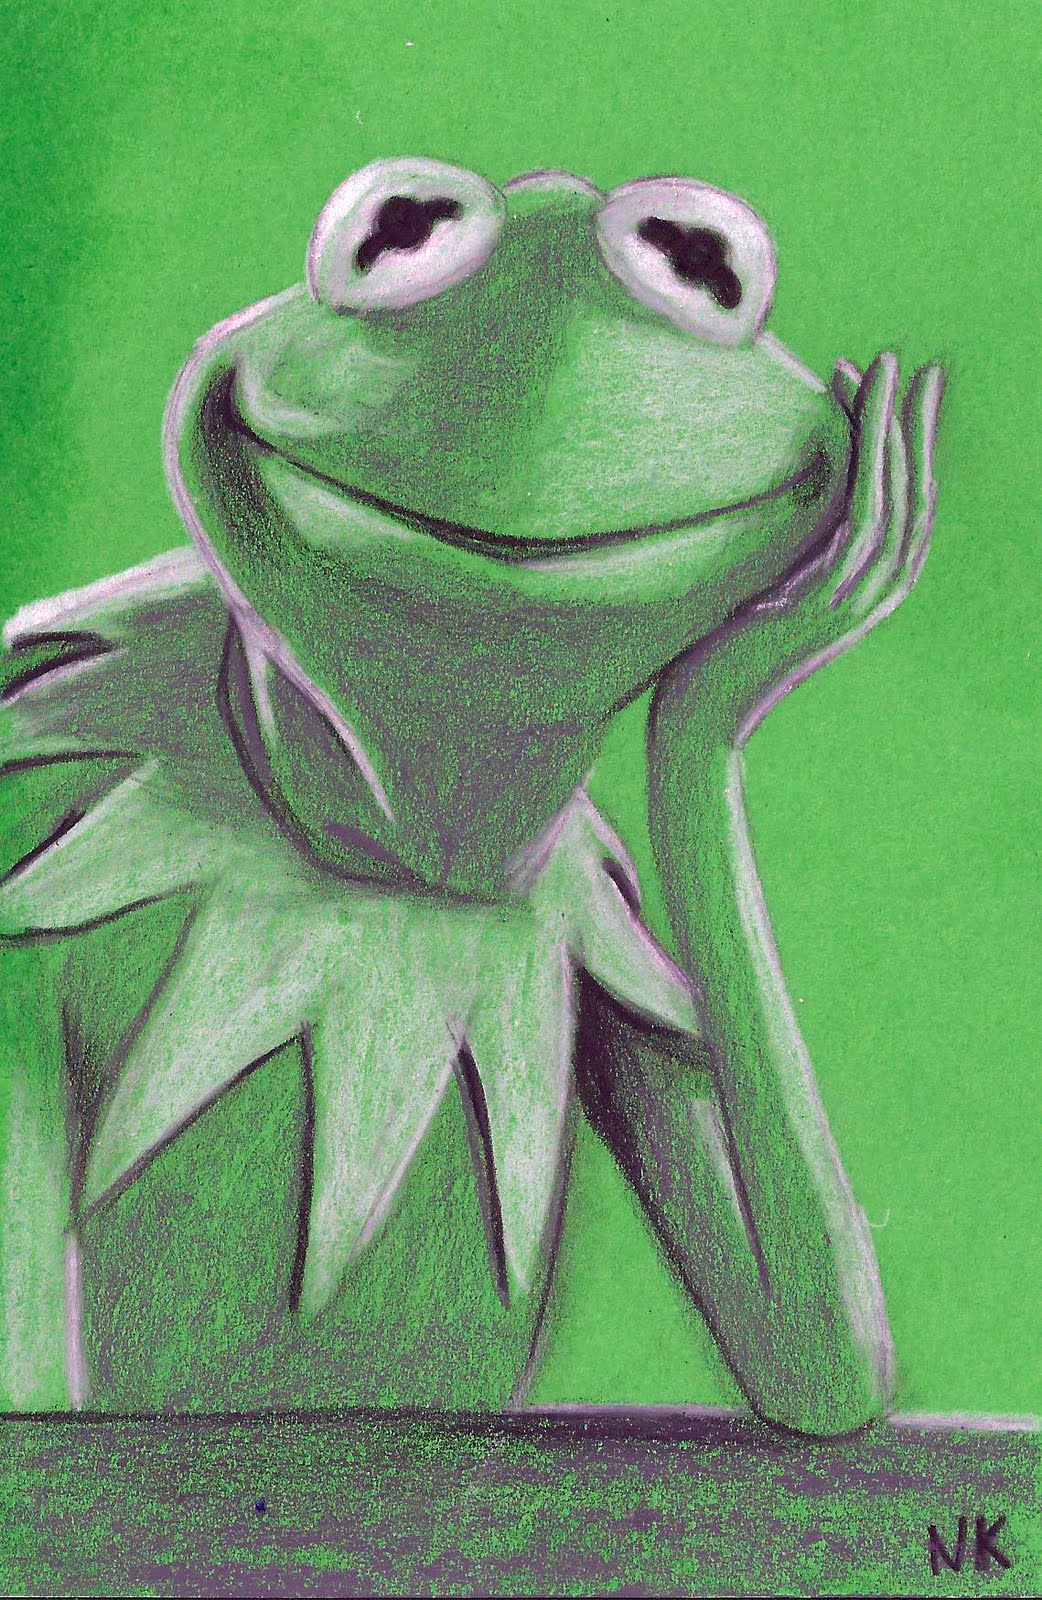 Kermit The Frog Wallpaper Wallpapersafari